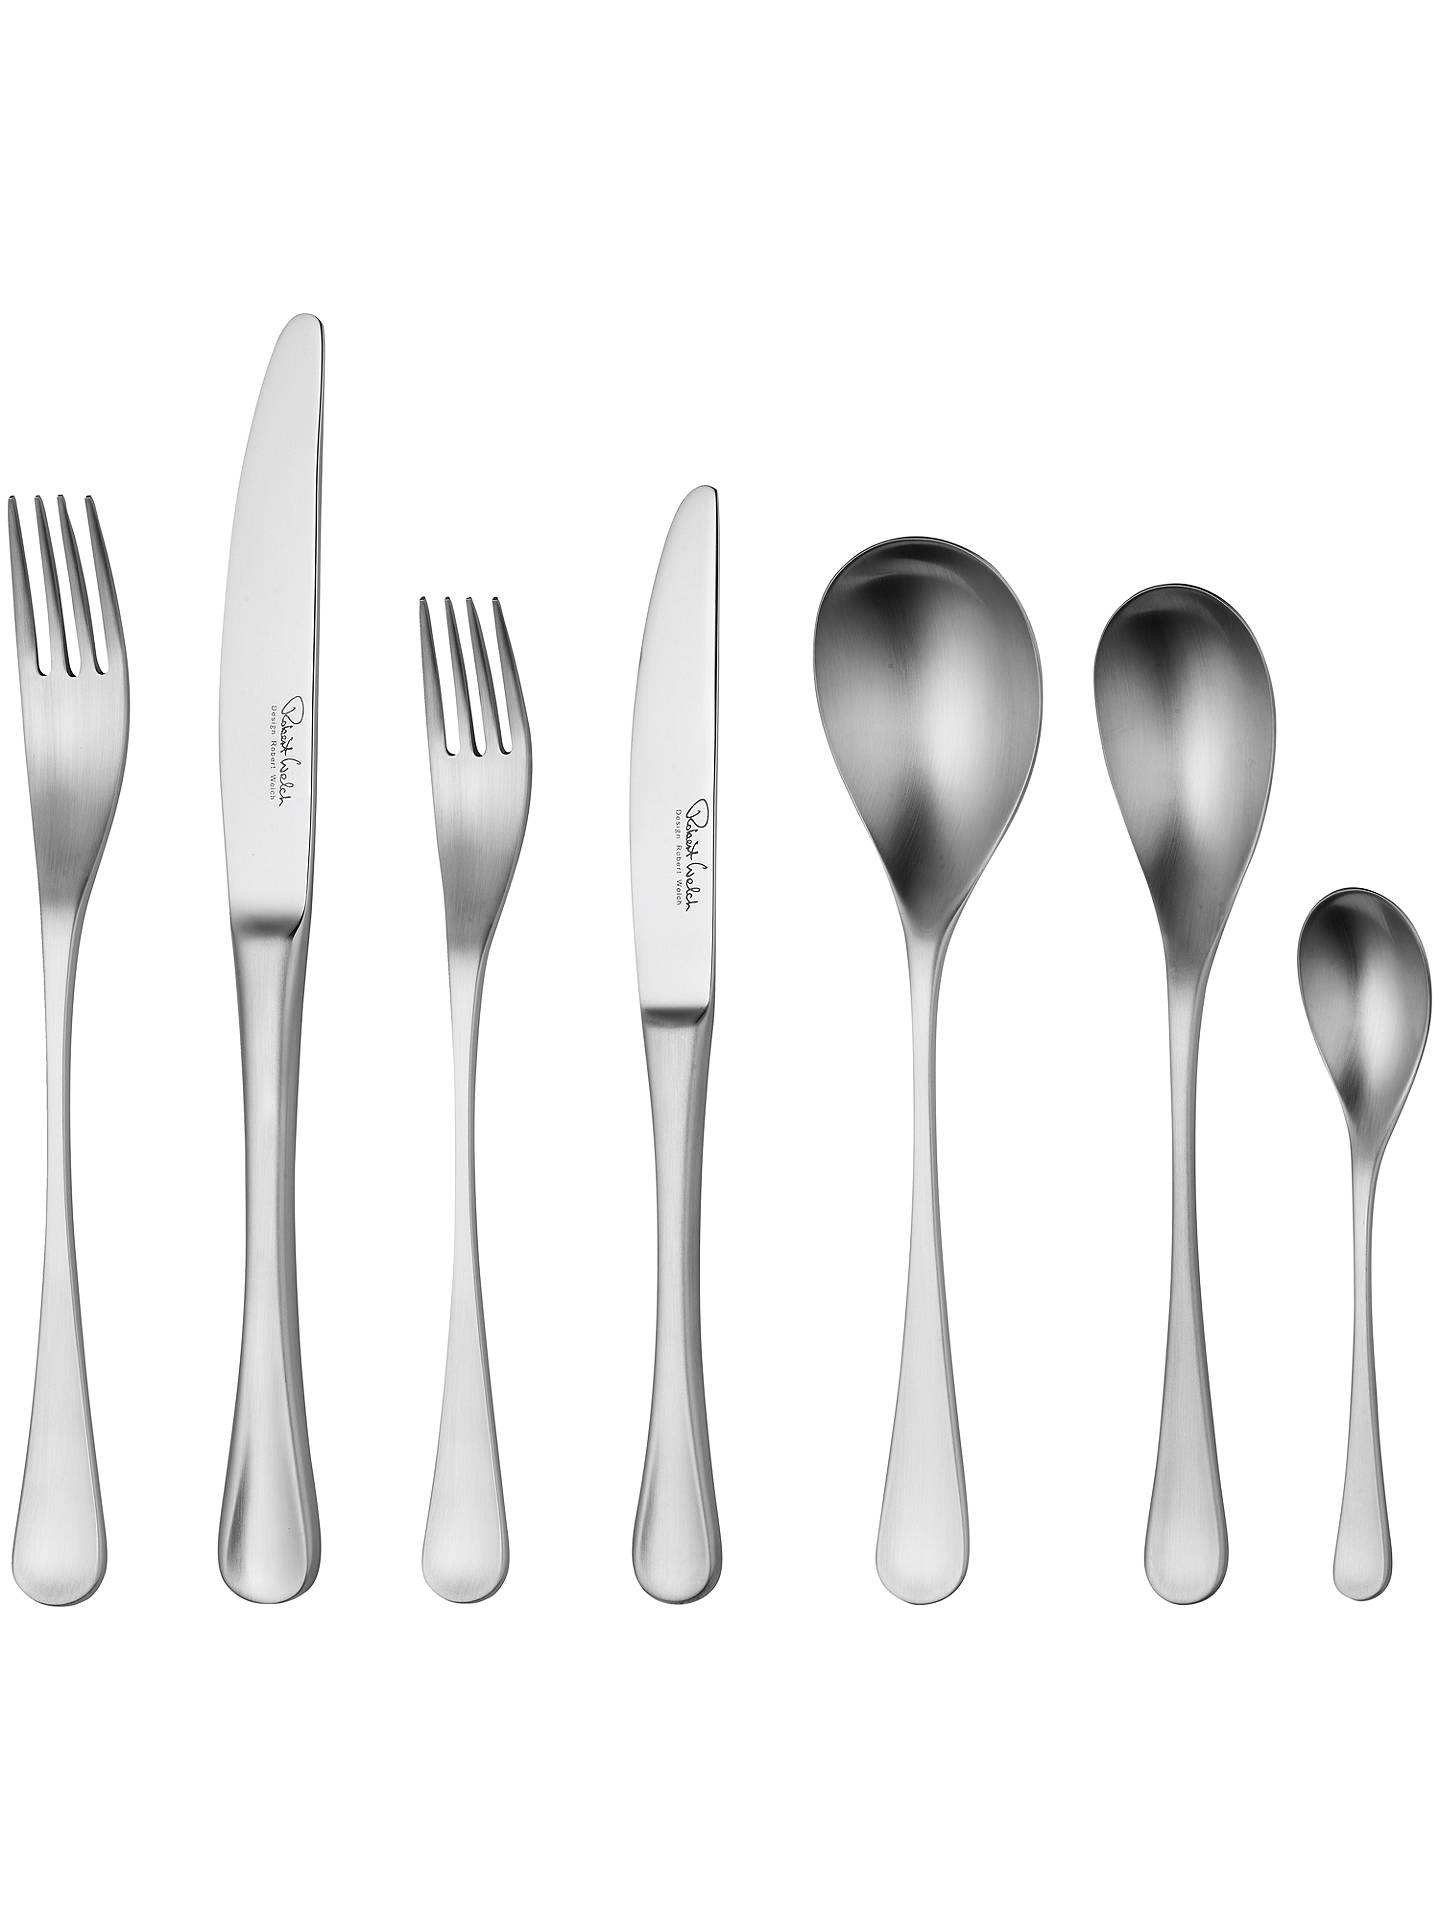 Buy Robert Welch RW2 Satin Cutlery Set, 56 Piece/8 Place Settings Online at johnlewis.com